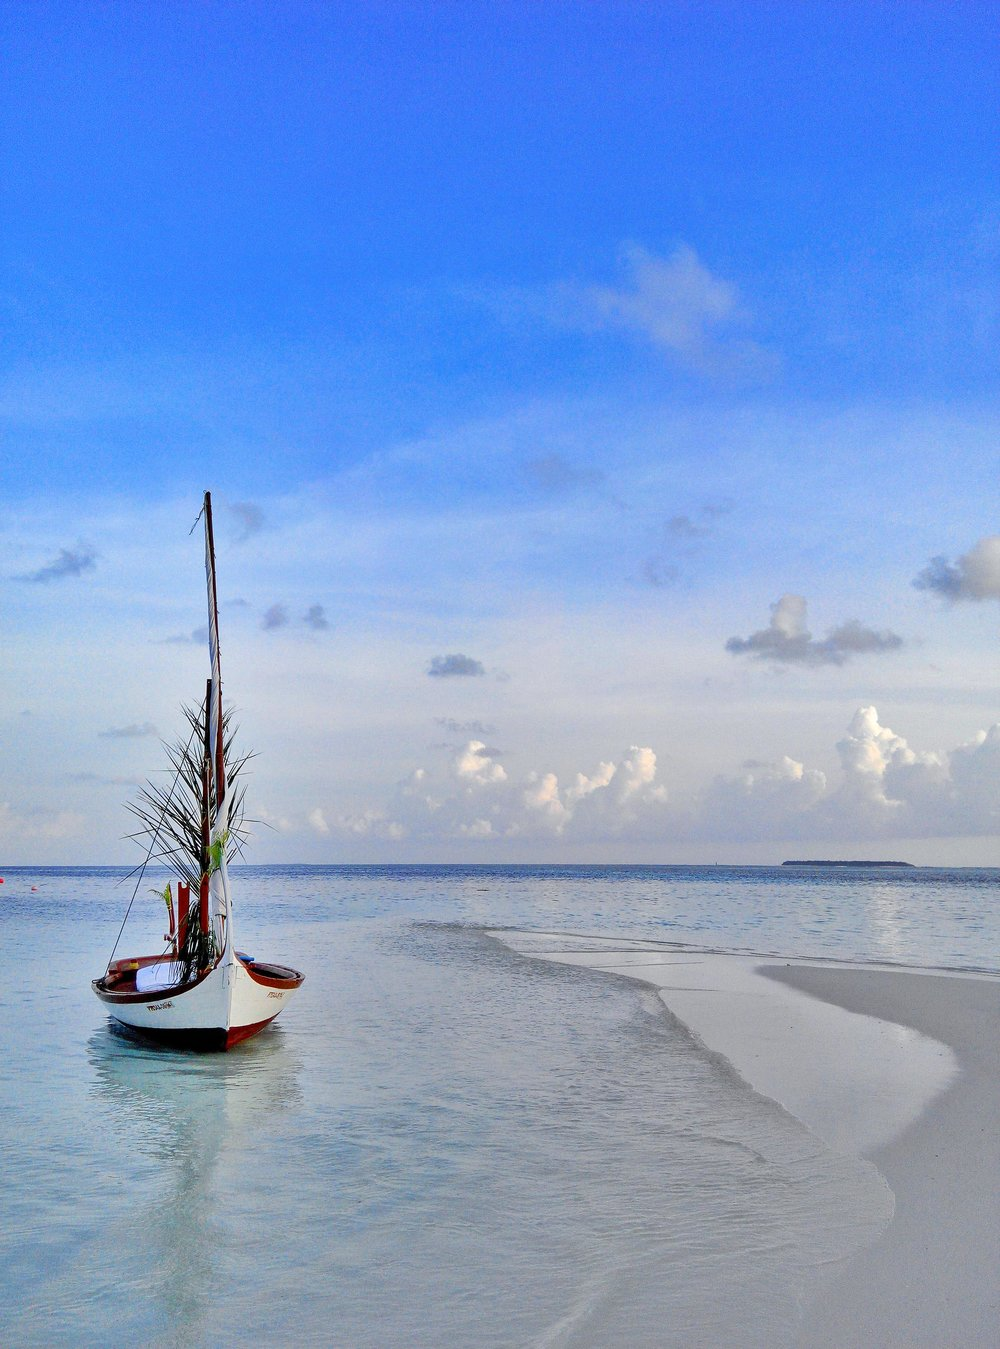 Rangali Island Maldives   A dingy made for two and only serves one purpose on such a scenic getaway.